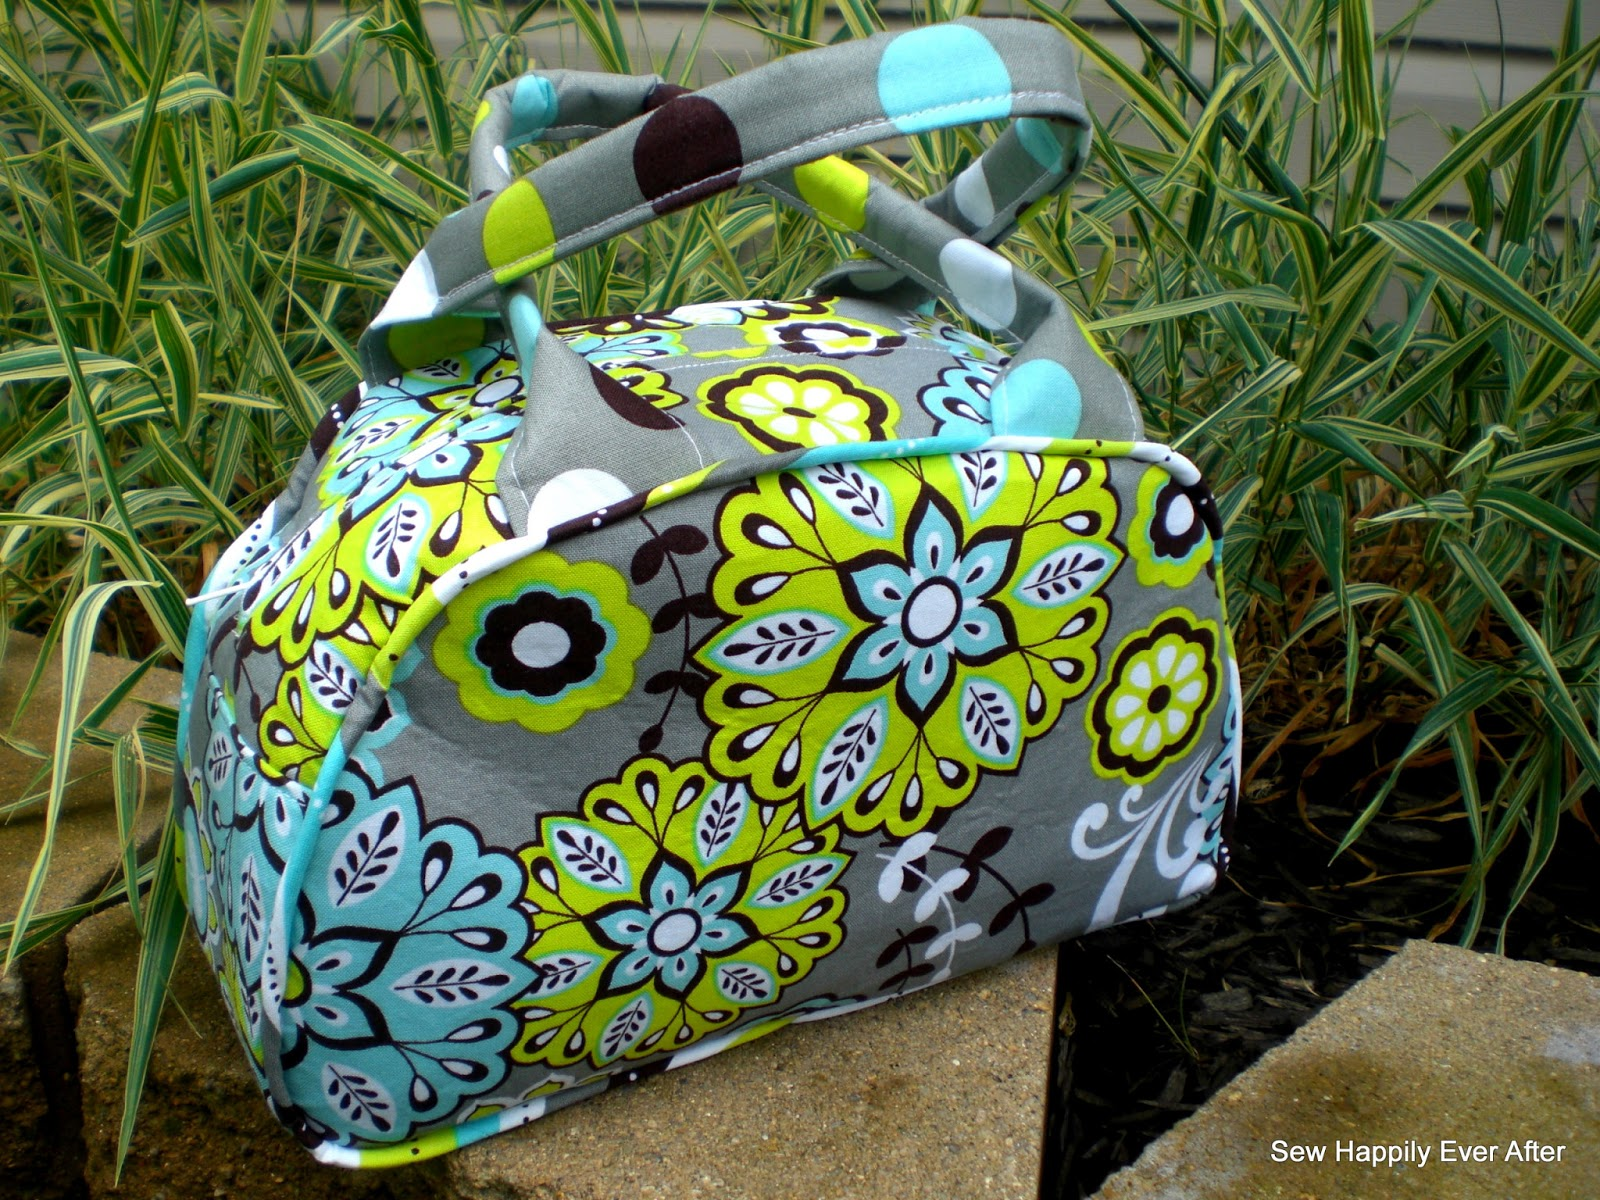 Sew Happily Ever After: Dottie Handbag by Swoon Sewing Patterns